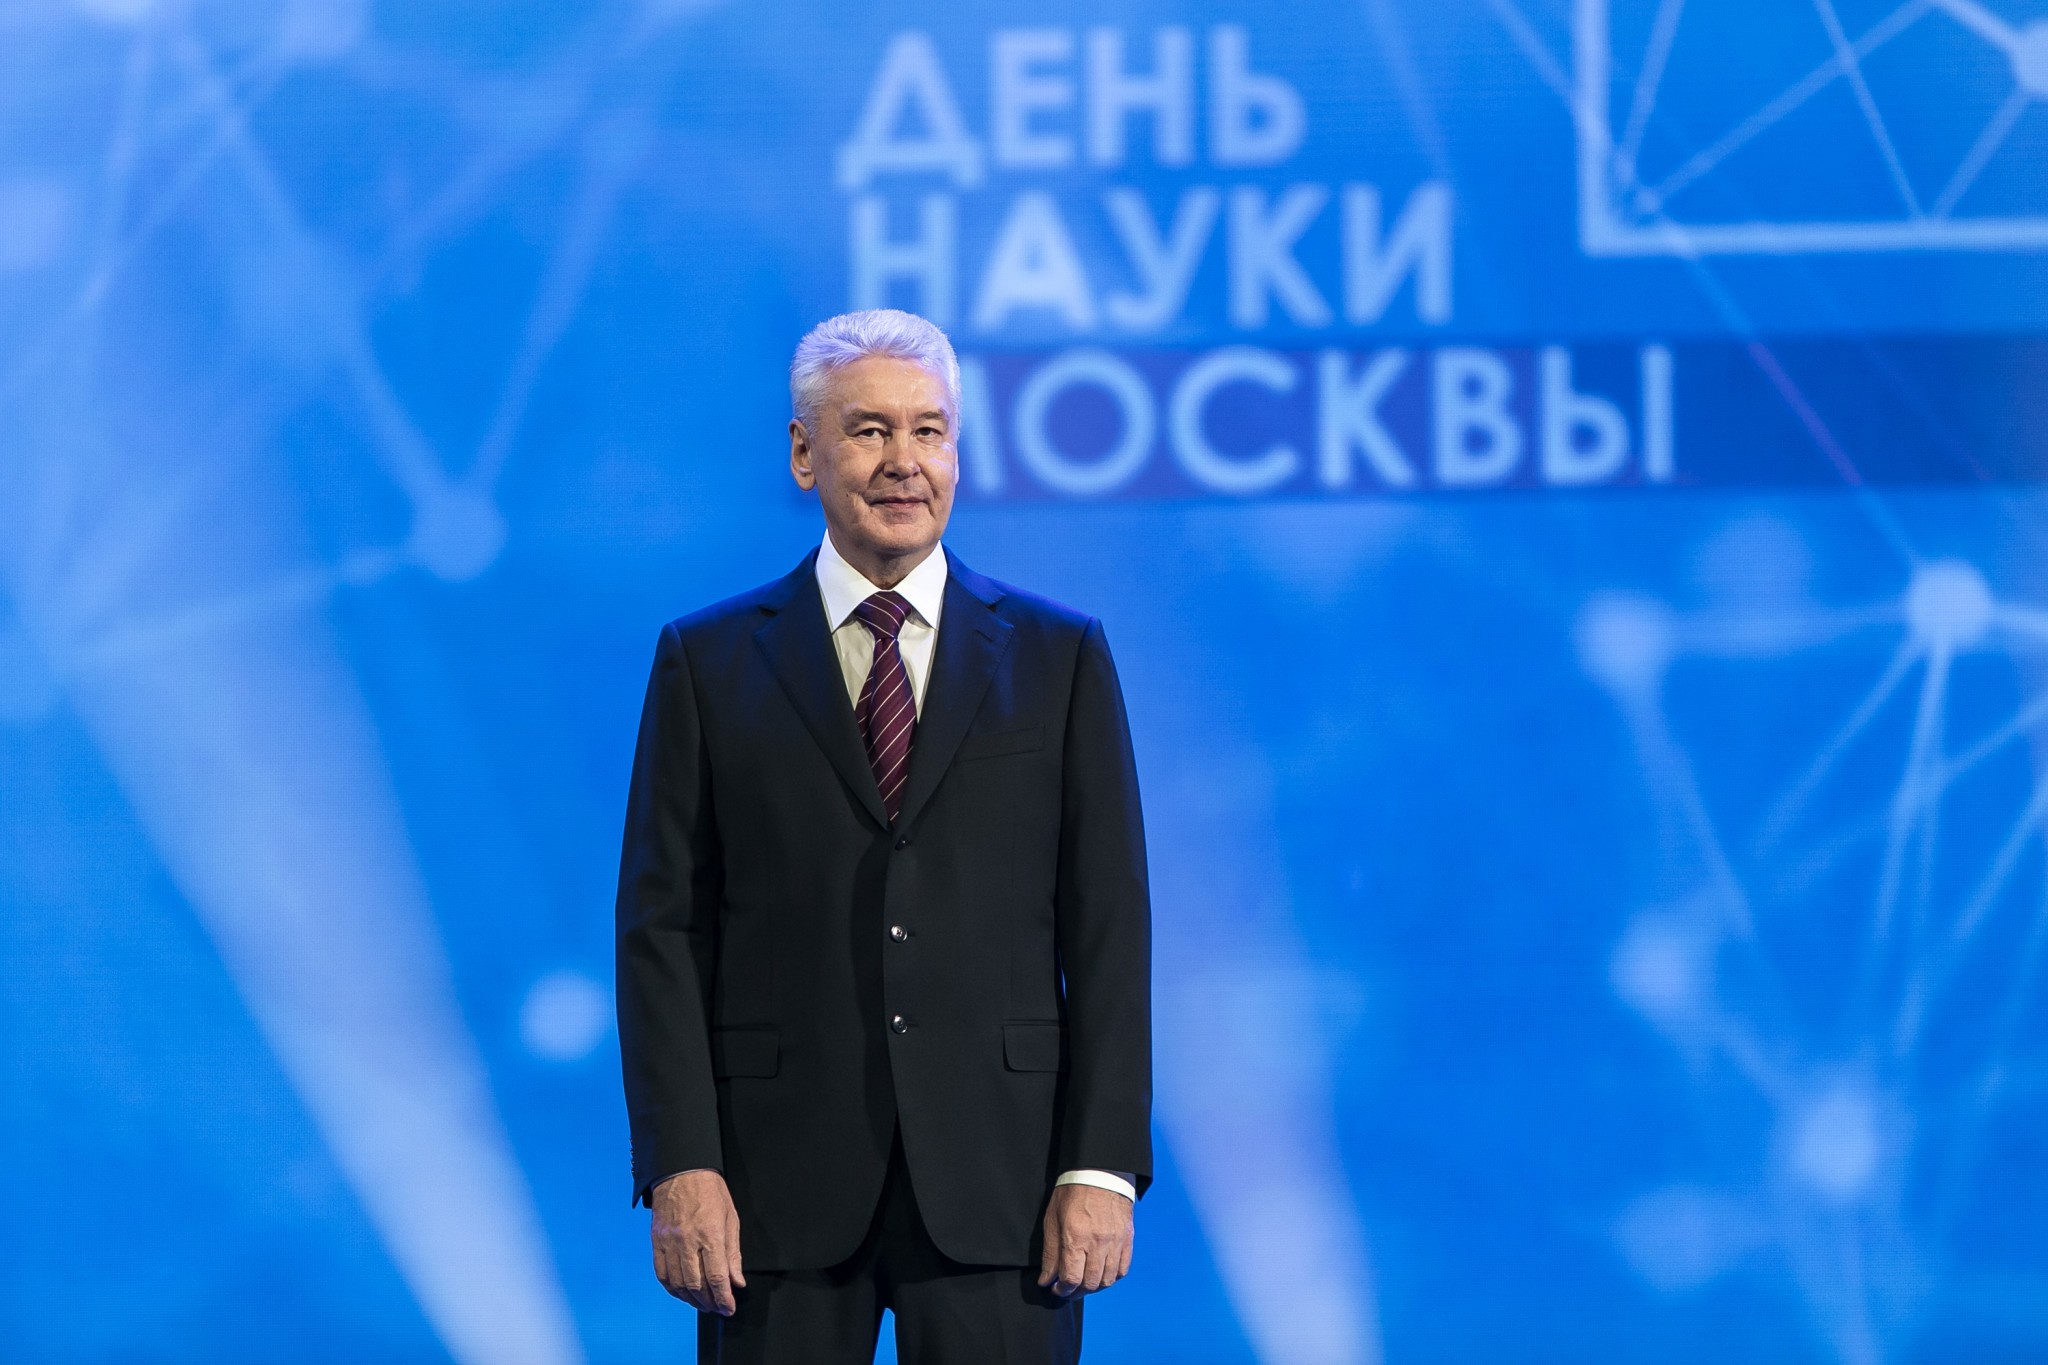 Moscow Mayor Sergei Sobyanin. Photo: DPNN.